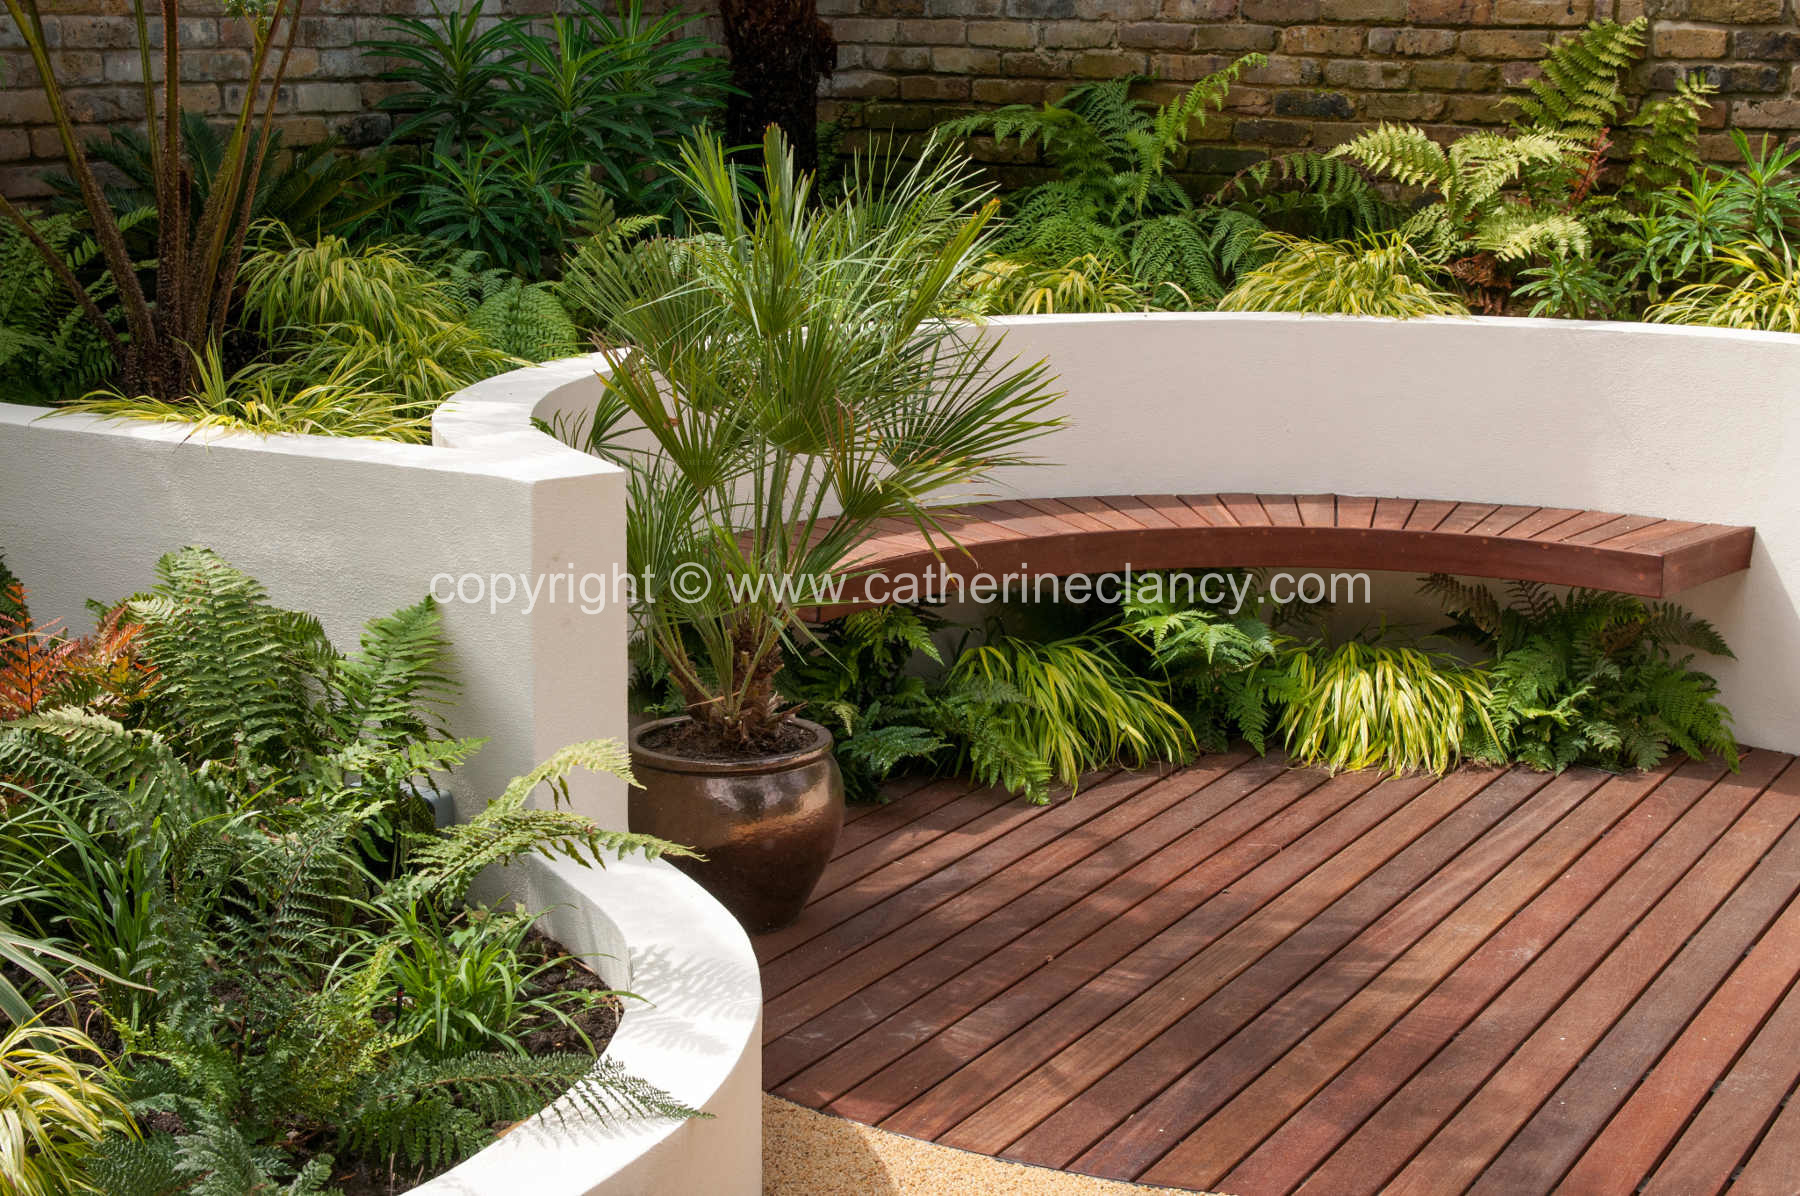 Blackheath Courtyard Garden by Garden Designer Catherine Clancy